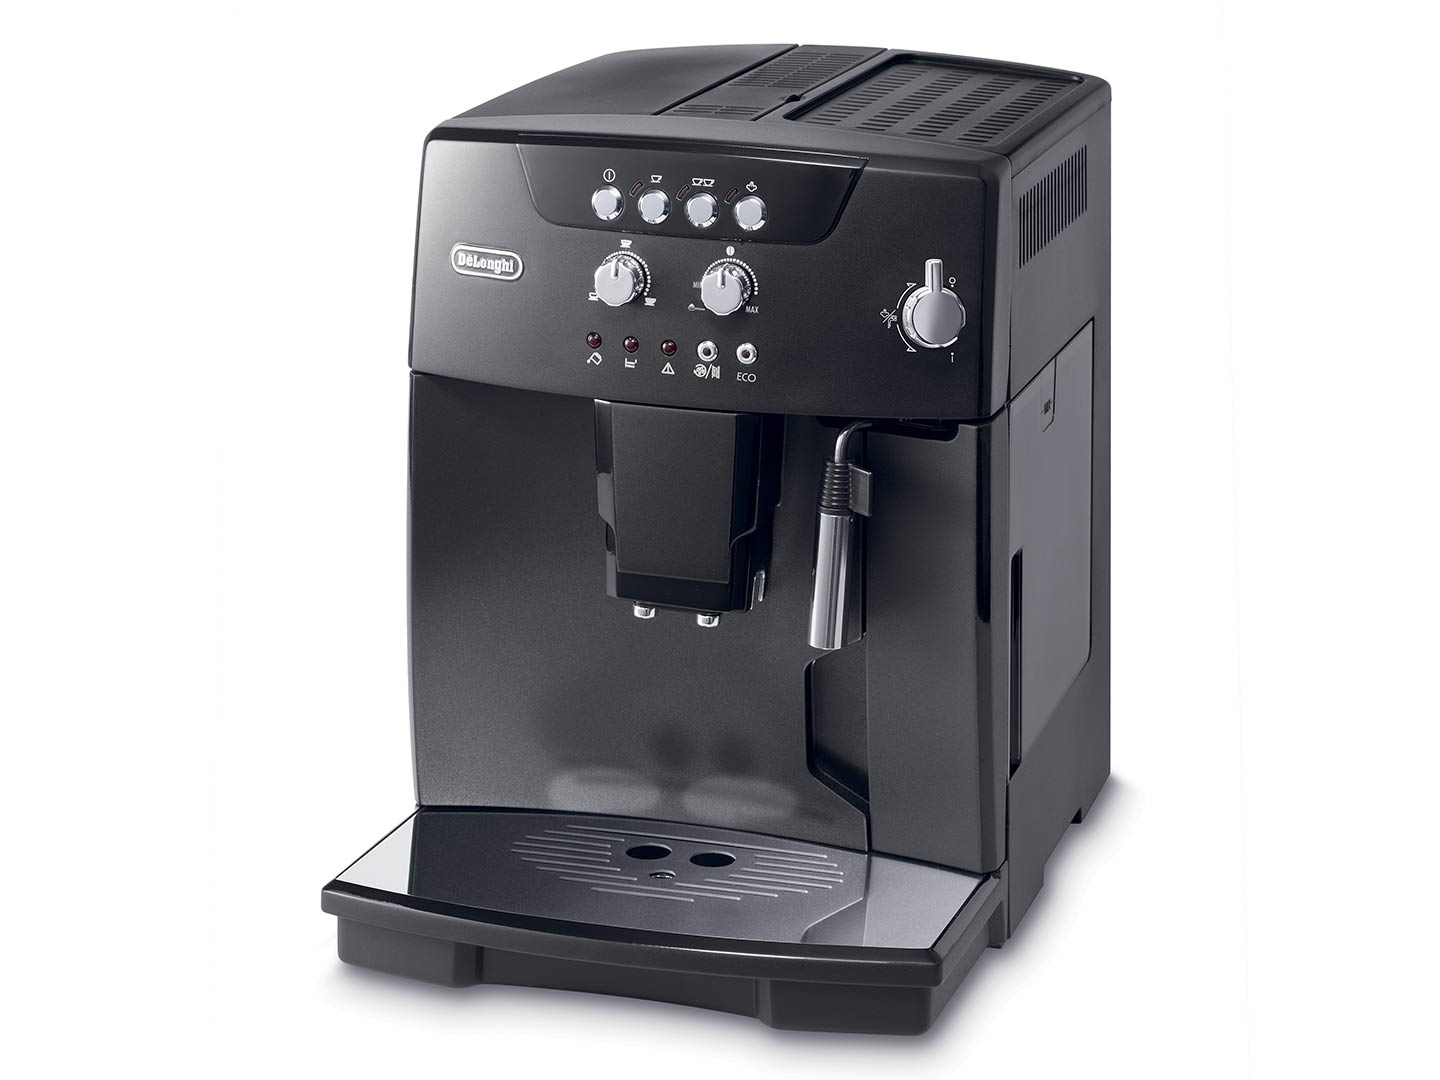 Magnifica ESAM04110B fully automatic coffee machine, this image shows how to froth milk